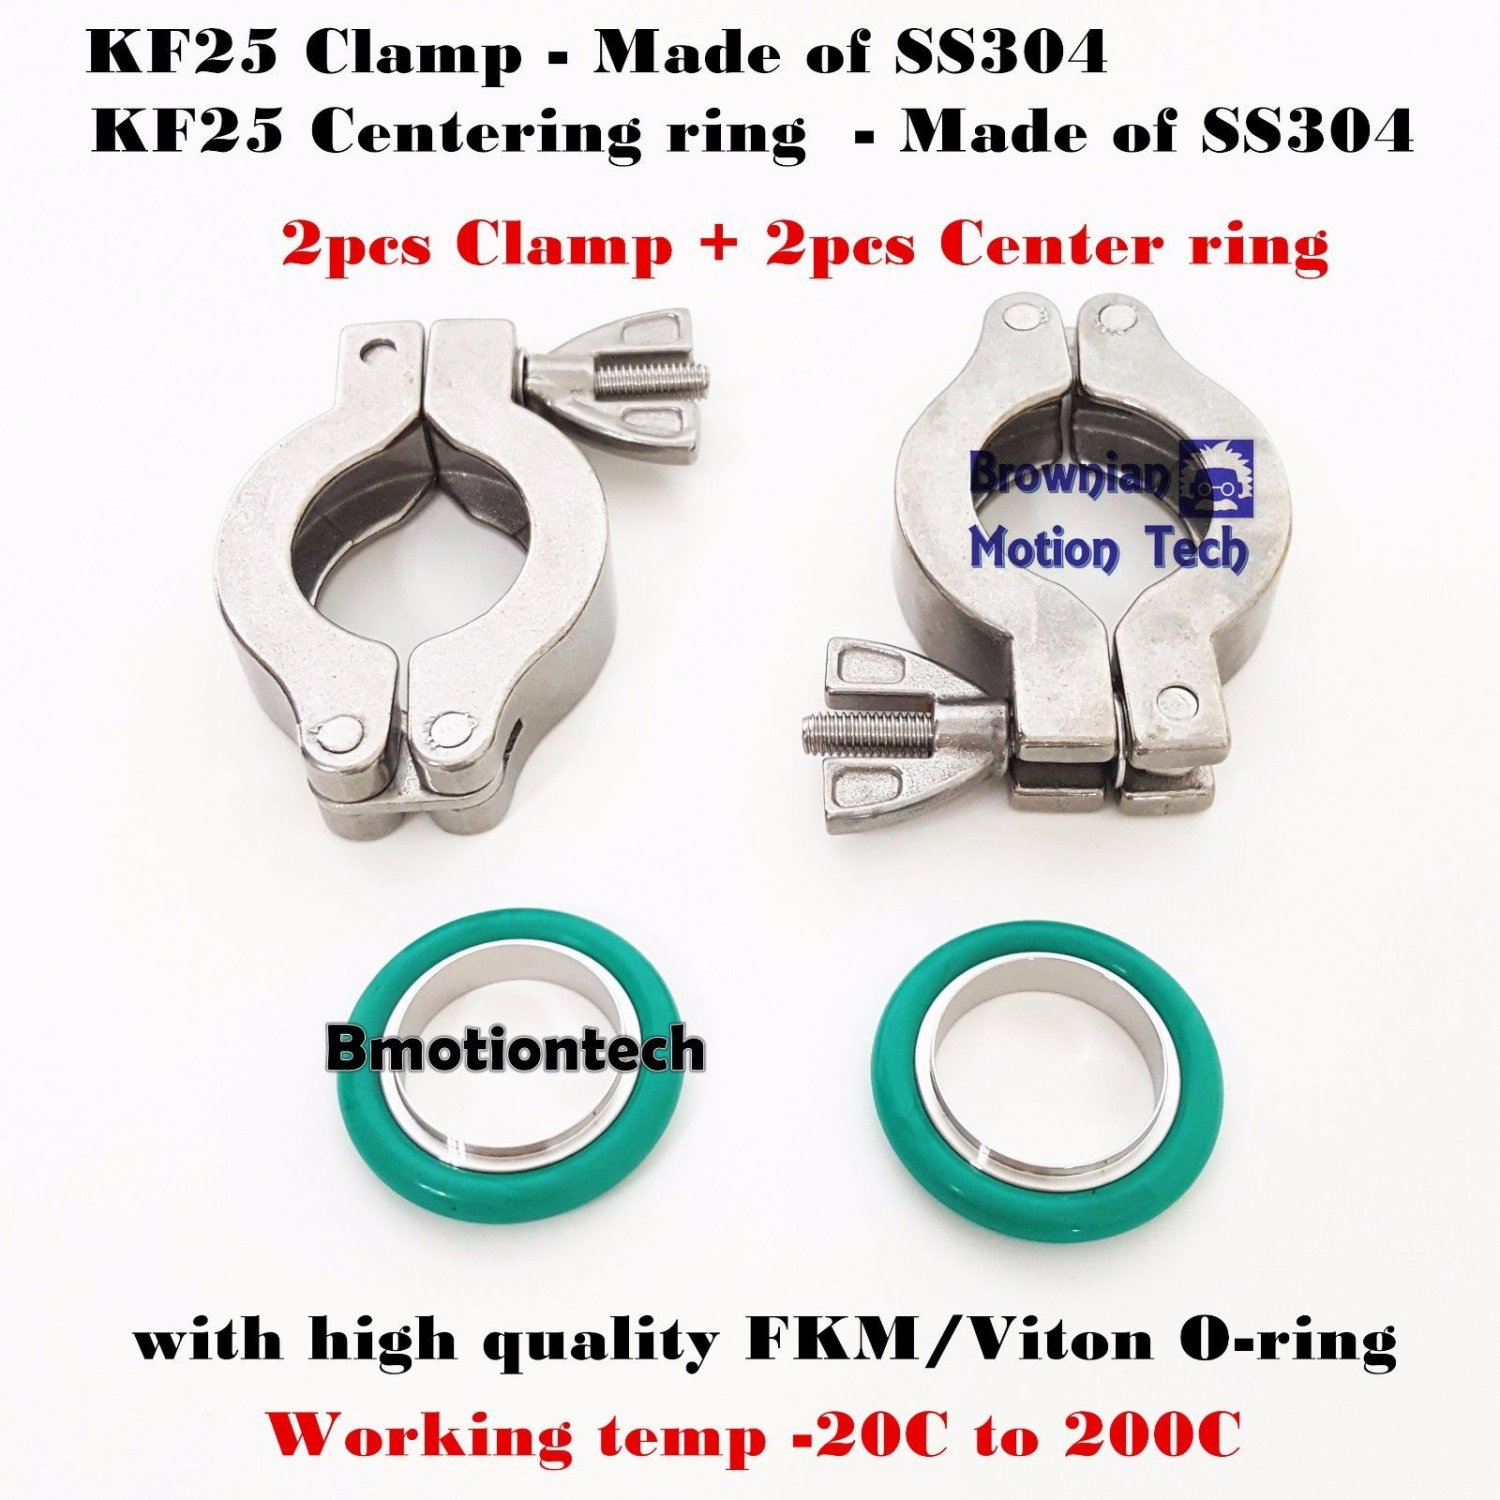 2 sets KF25 Stainless steel vacuum clamp ring + Center ring with FKM viton Oring